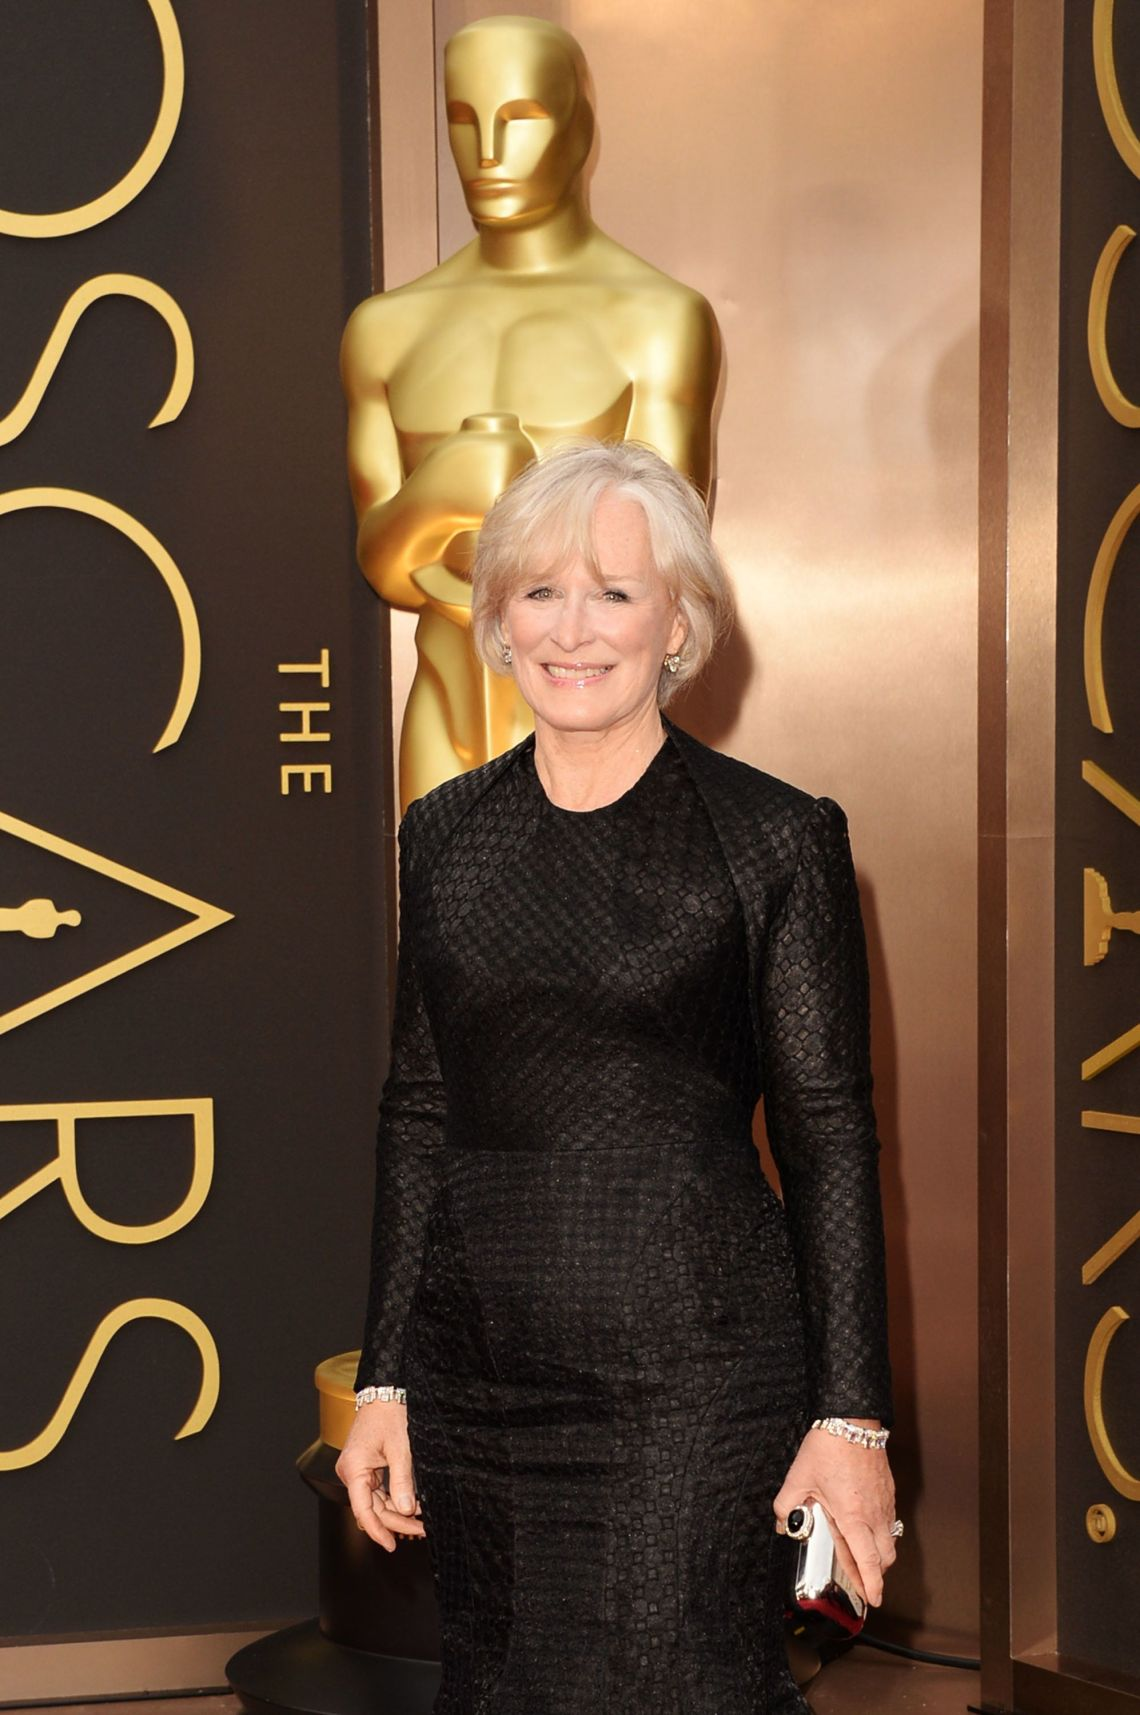 She's been nominated for an Academy Award a whopping six times, yet Glenn Close has never won in her category. All signs point to 2019 being the year, though, with her critically-acclaimed performance in 'The Wife' seeing her triumph at the Golden Globes and Critics' Choice Awards. Fingers crossed eh, Glenn?